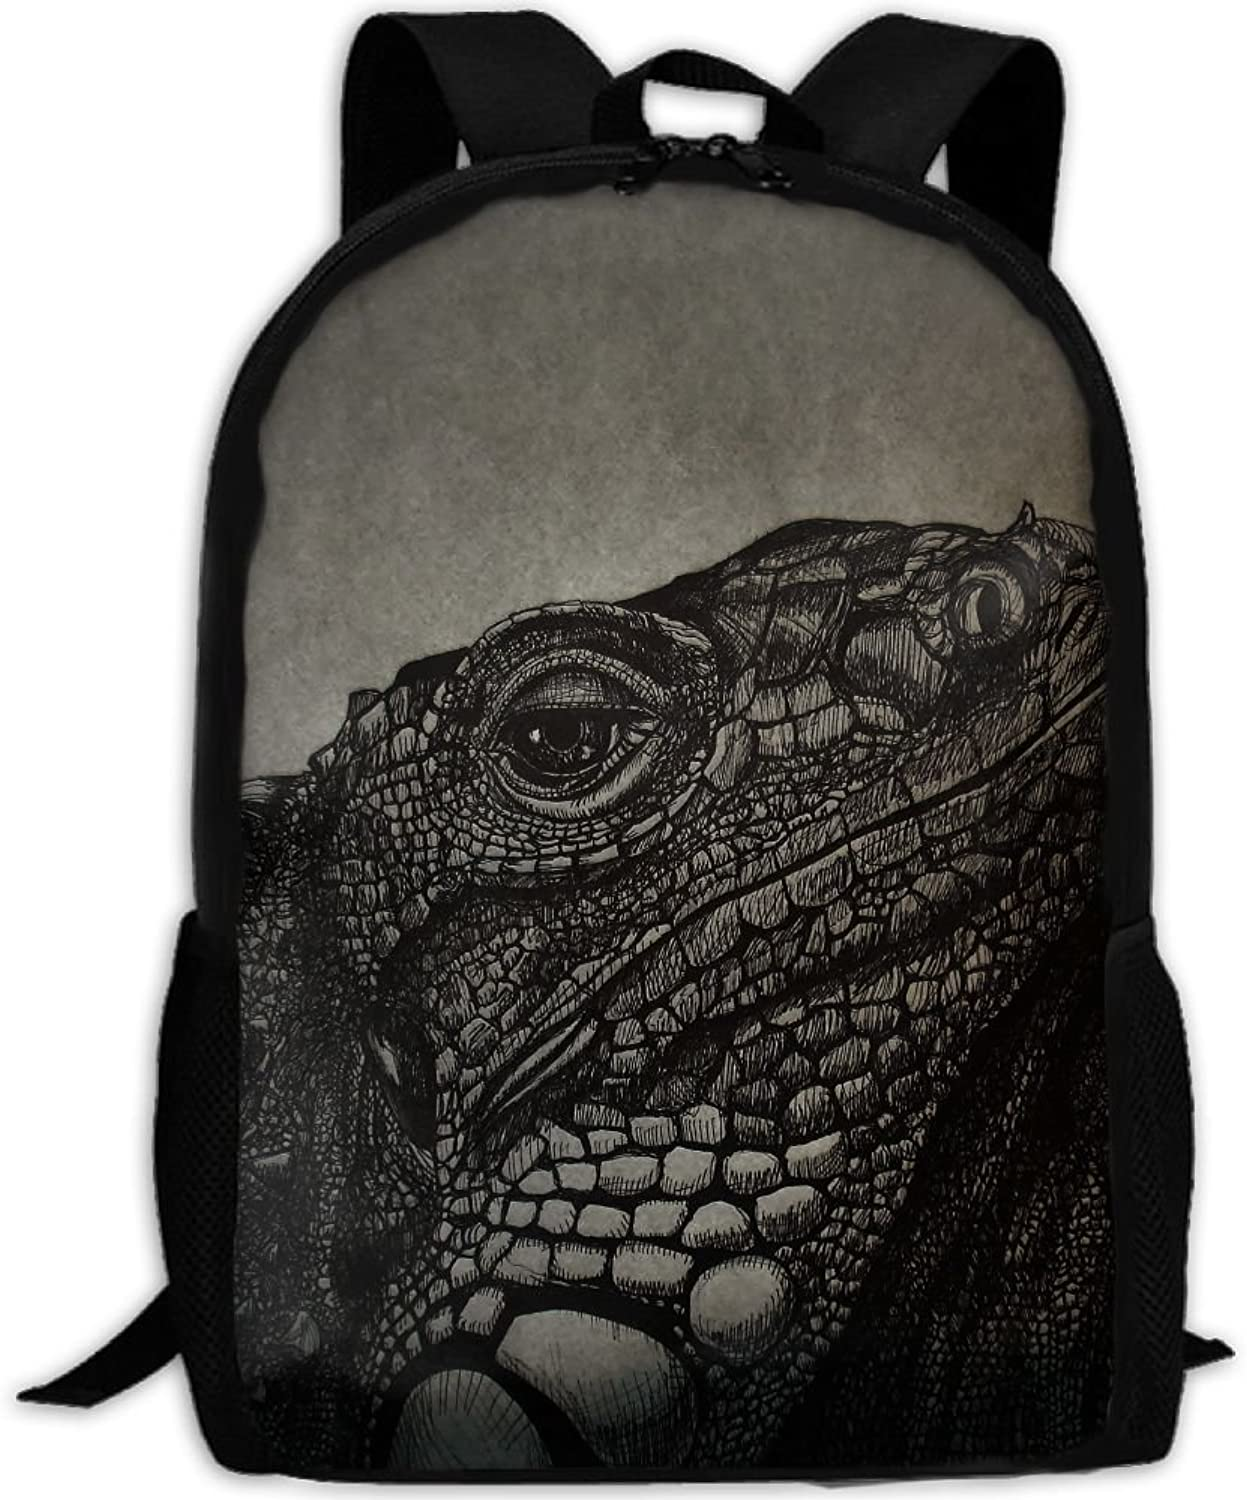 Backpack Laptop Travel Hiking School Bags Lizard Chameleon Daypack Shoulder Bag